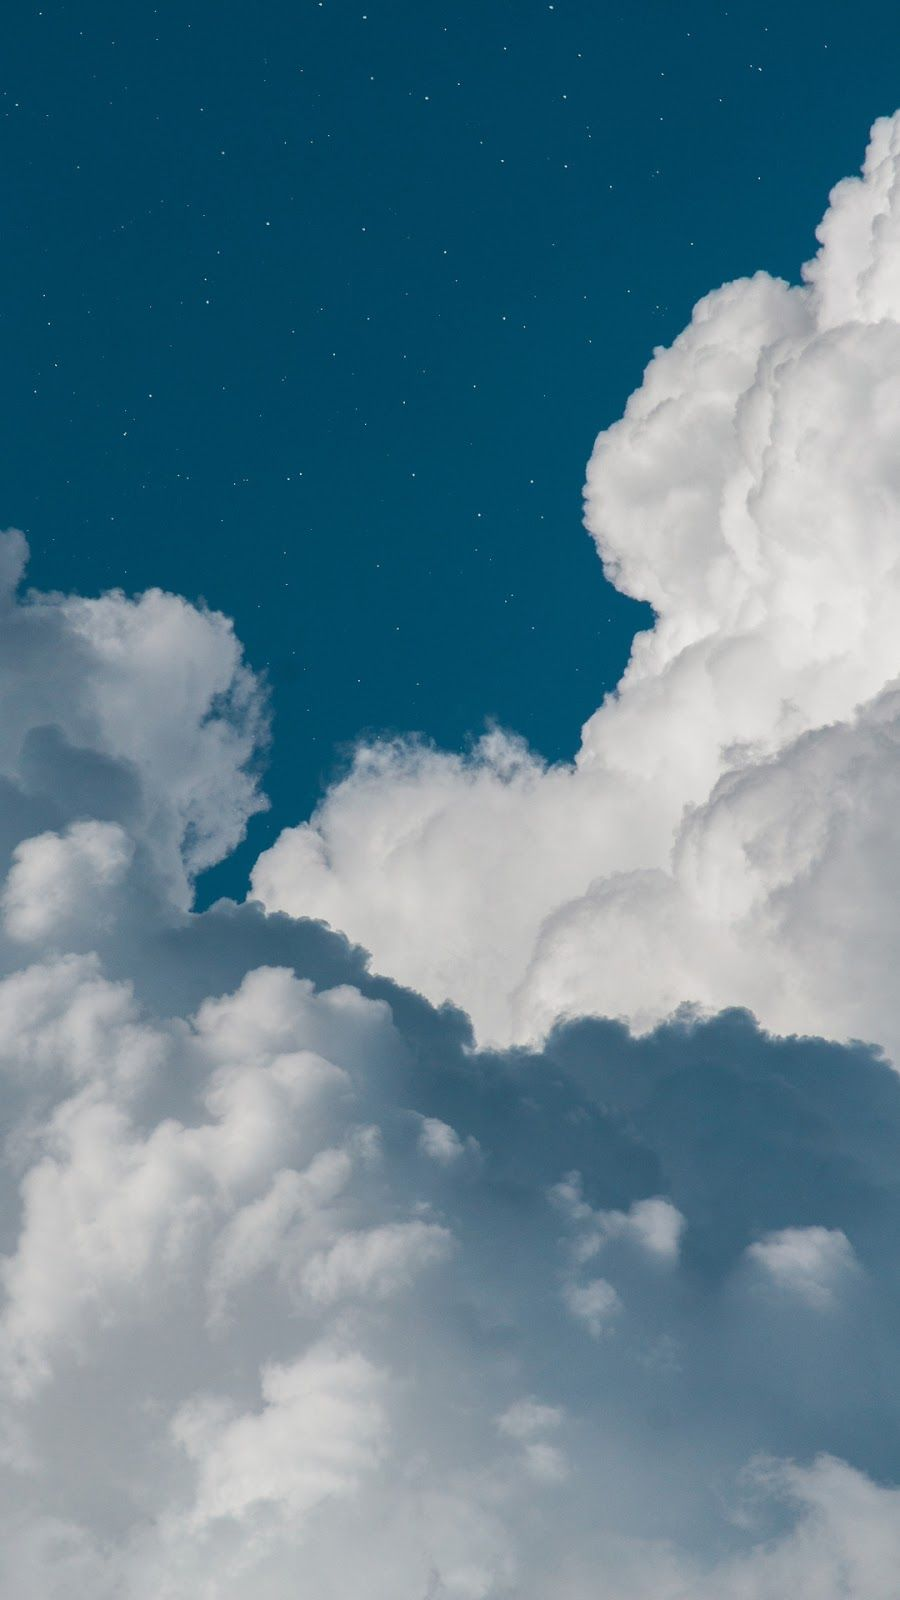 Clouds Wallpaper Iphone Android Background Followme Clouds Wallpaper Iphone Cloud Wallpaper Clouds